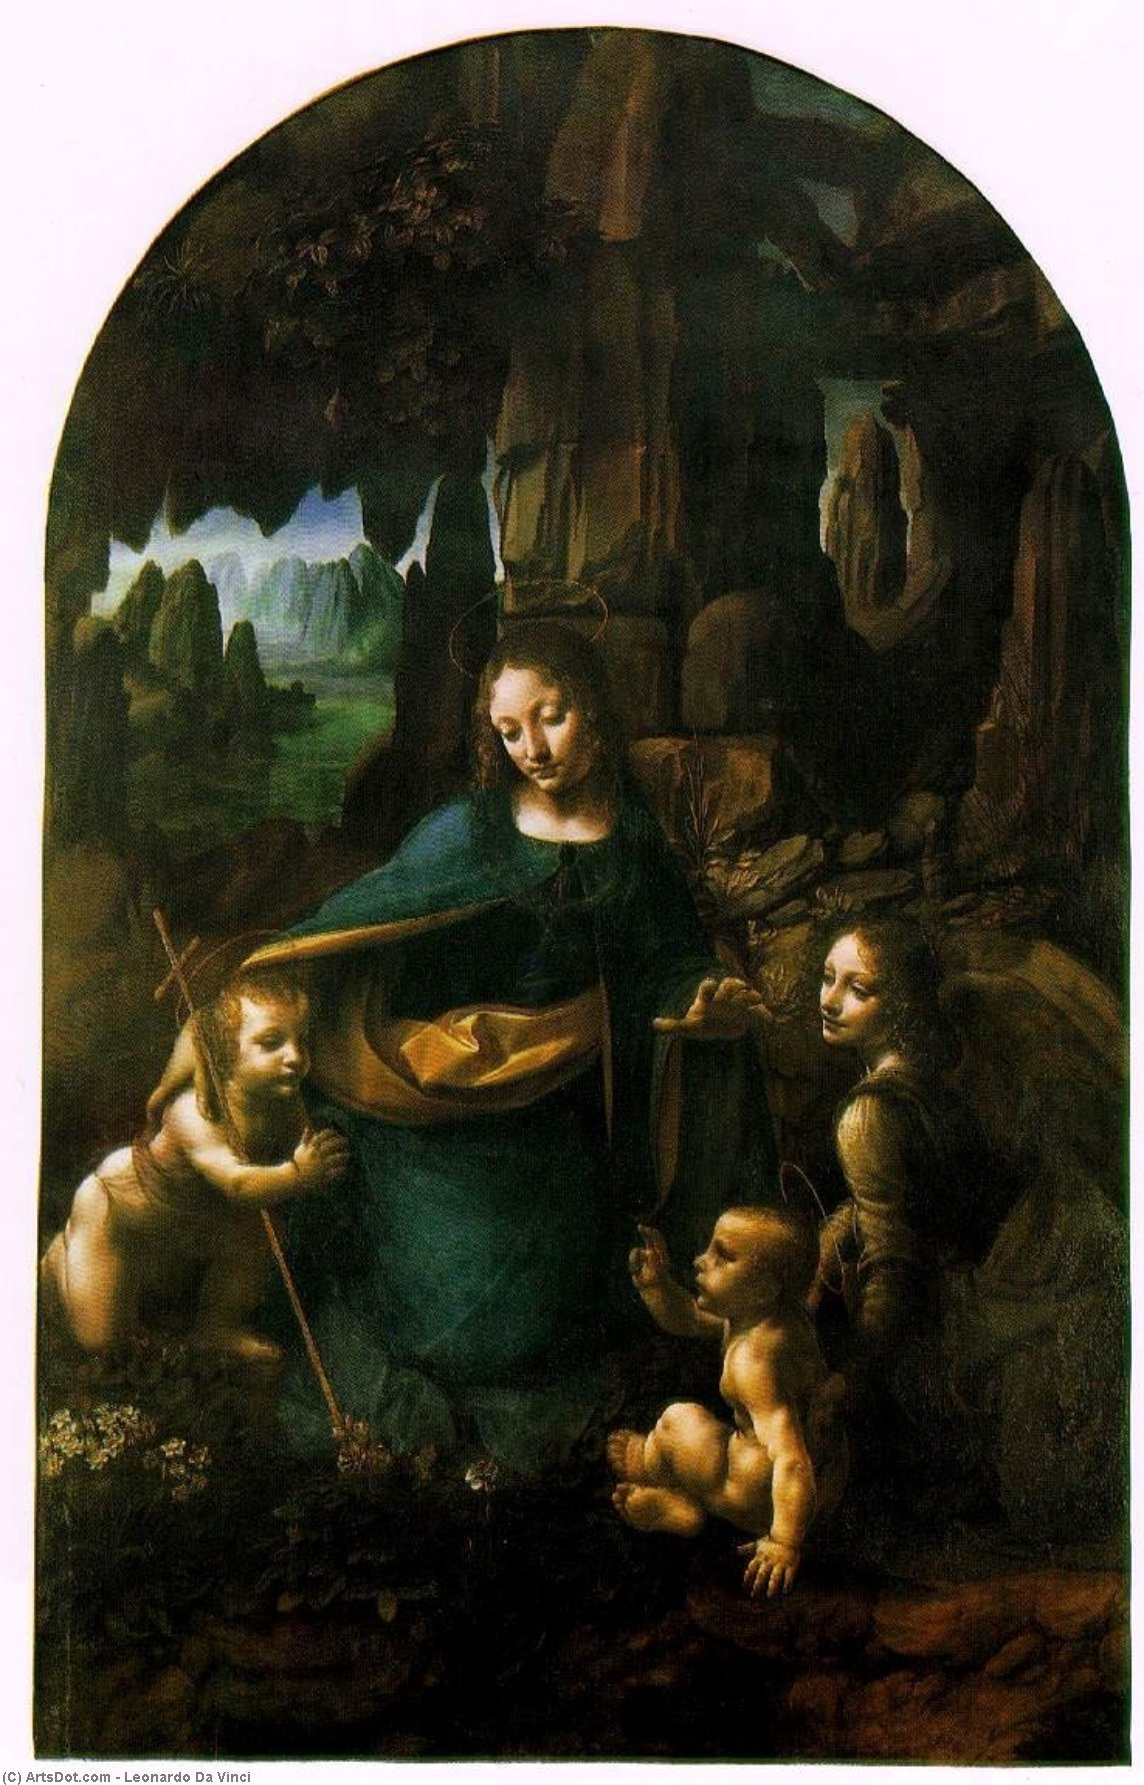 Wikioo.org - The Encyclopedia of Fine Arts - Painting, Artwork by Leonardo Da Vinci - Virgin of the Rocks - London